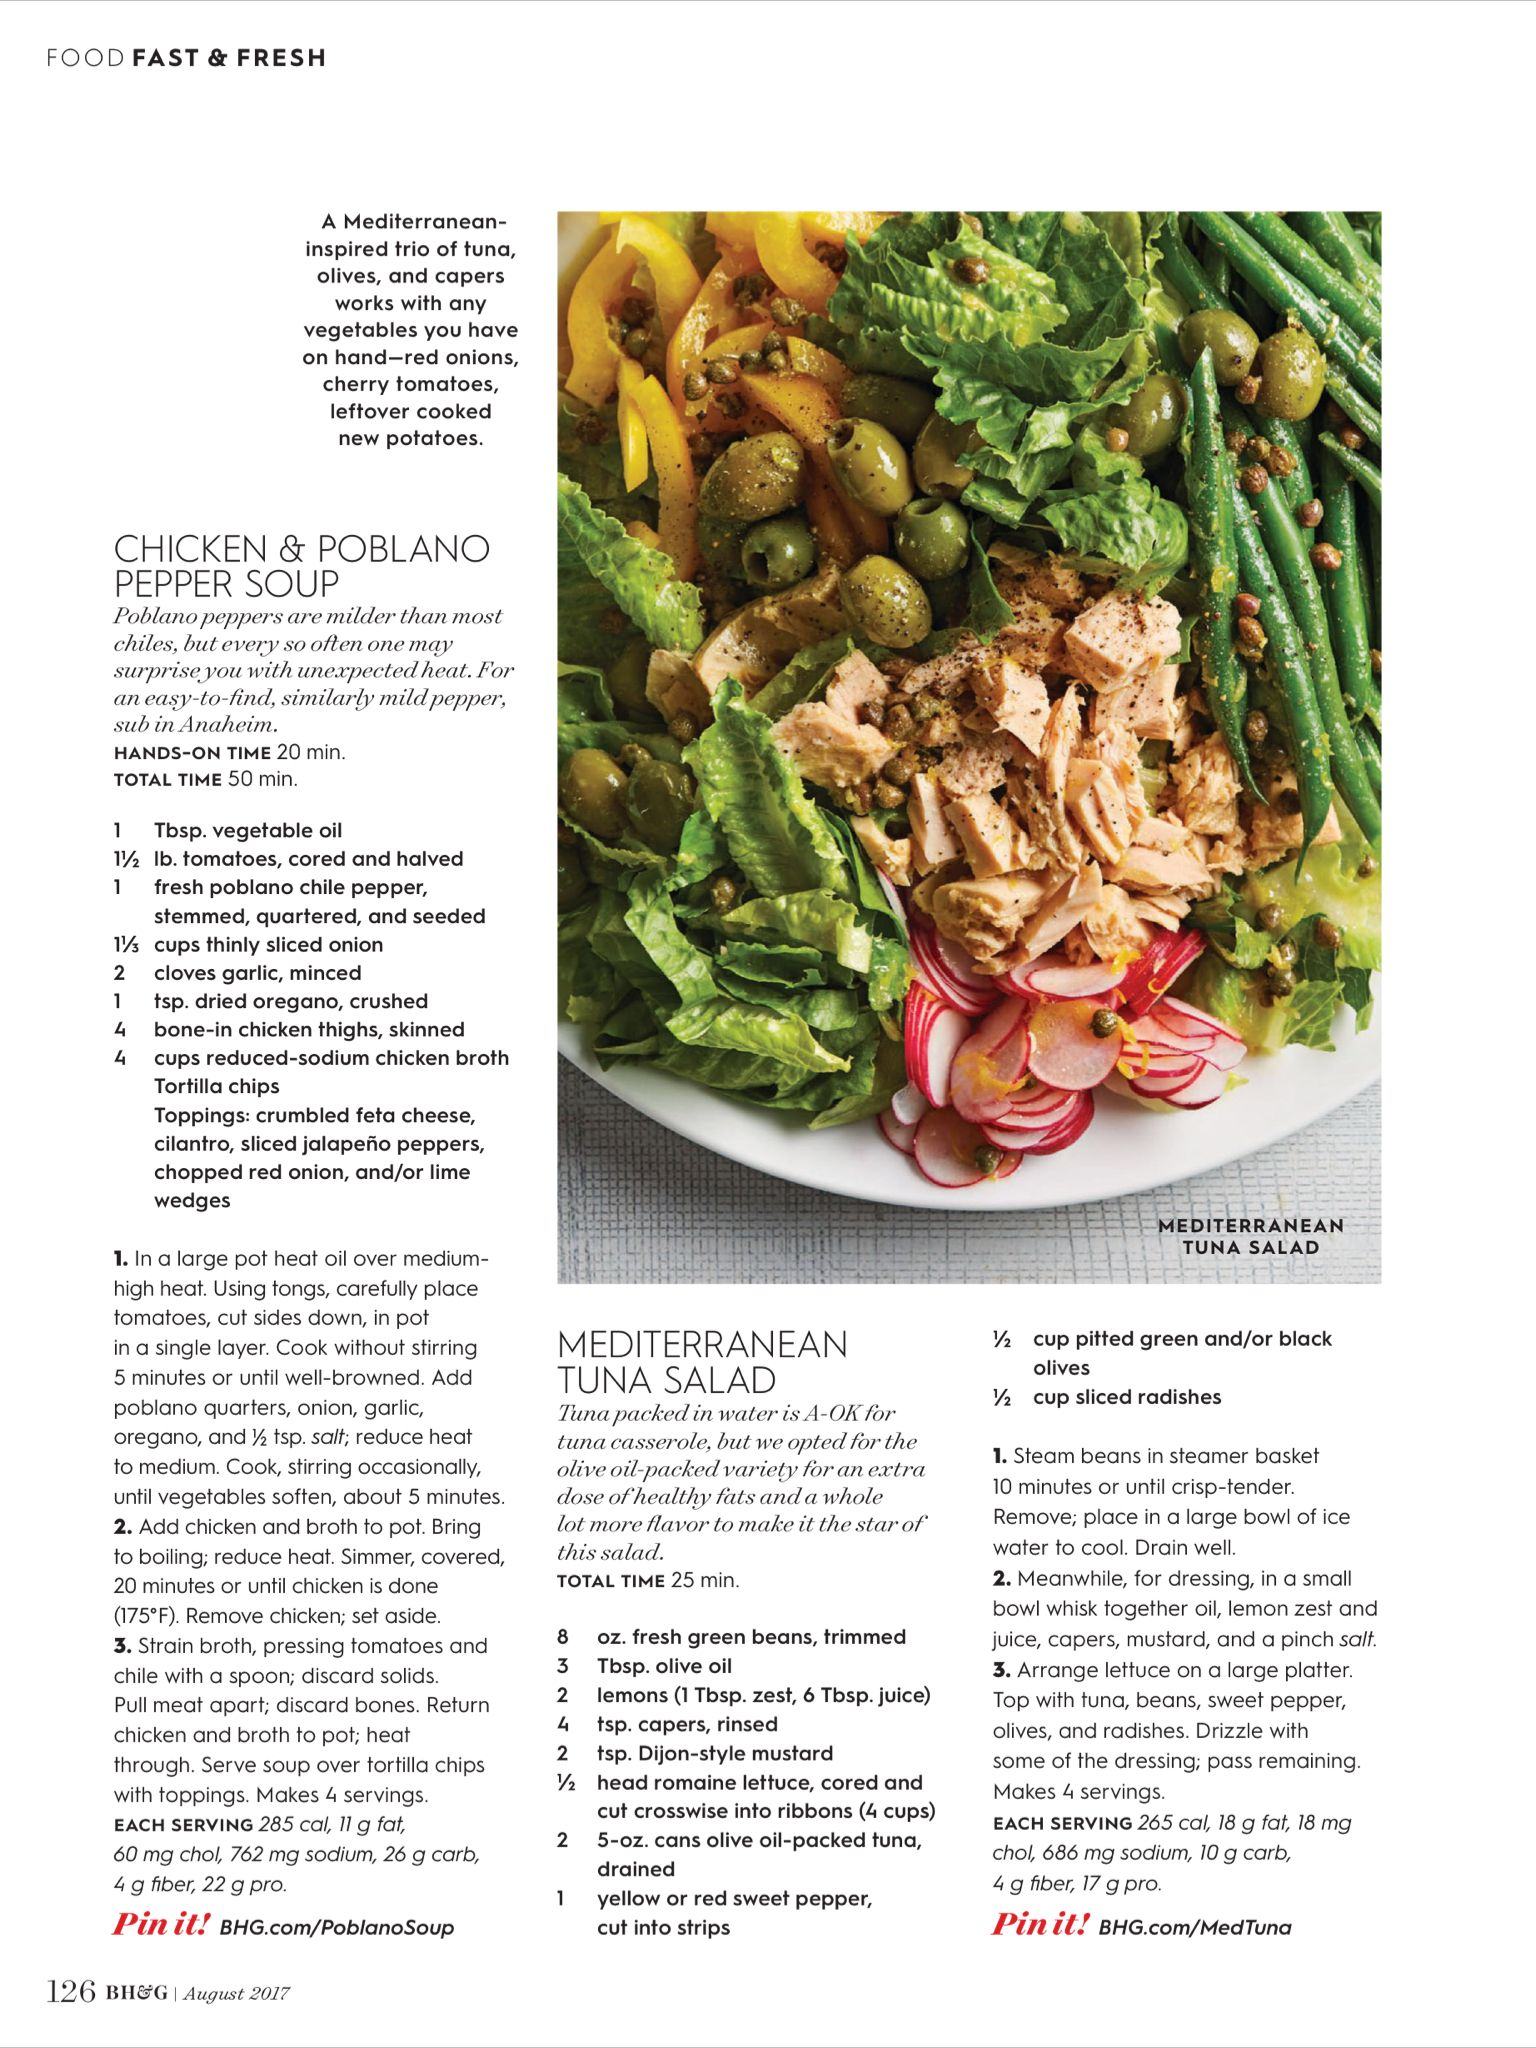 Fast Fresh From Better Homes And Gardens August 2017 Read It On The Texture App Unlimited Access To 200 Top Mag Stuffed Pepper Soup Stuffed Peppers Food